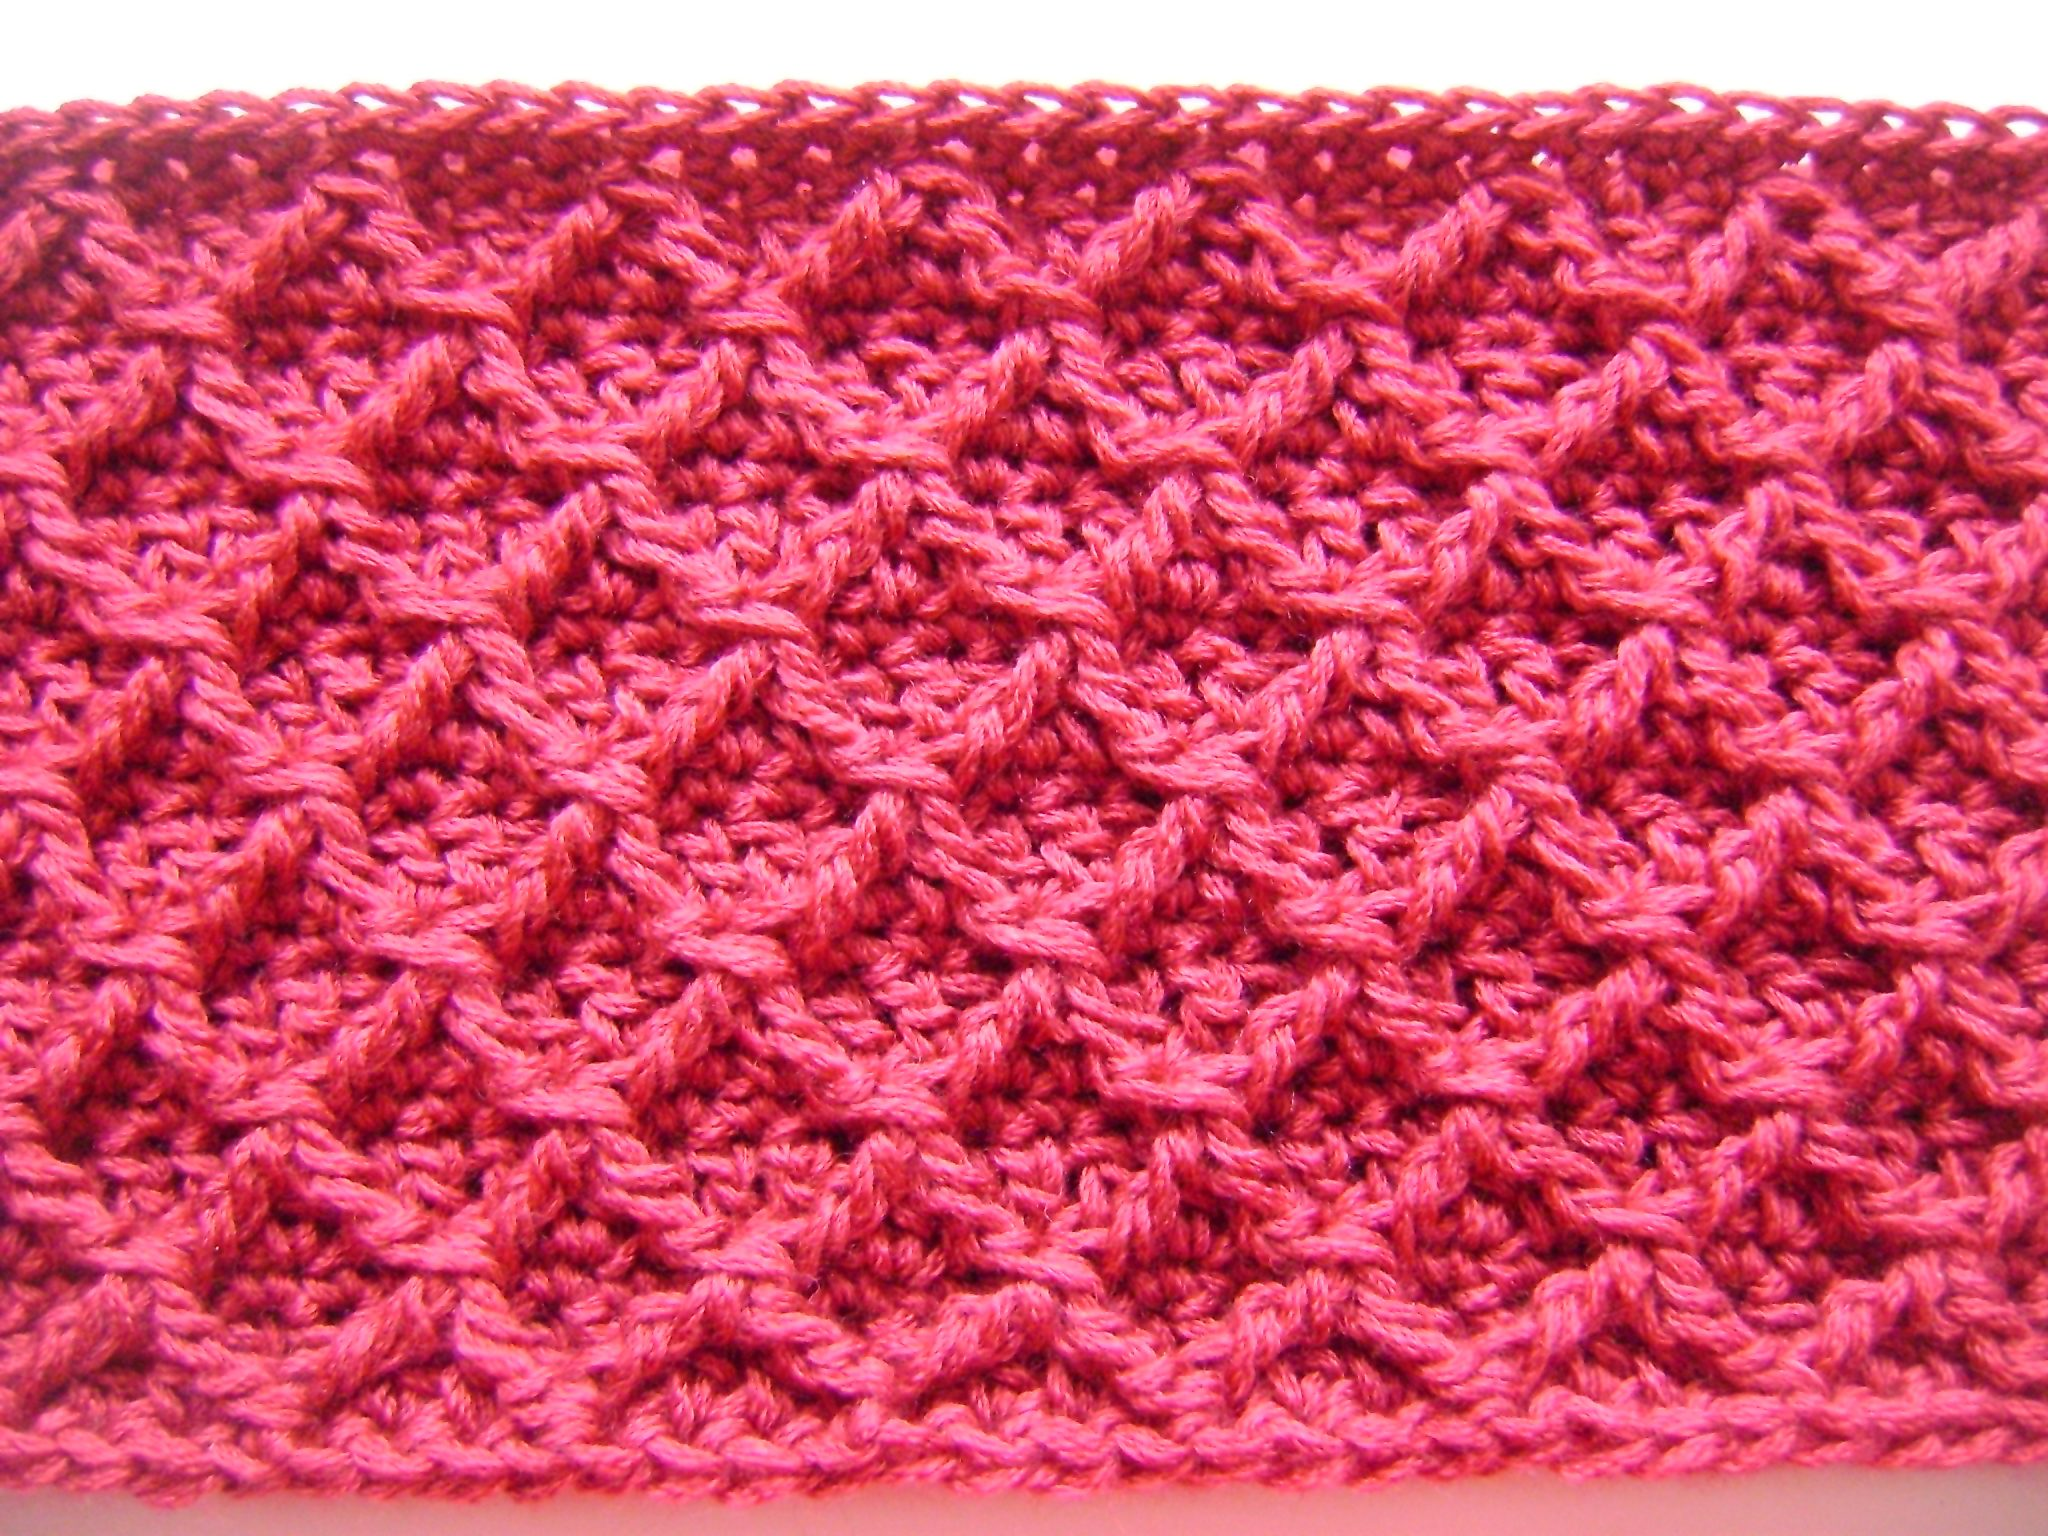 Crochet Diamond Pattern